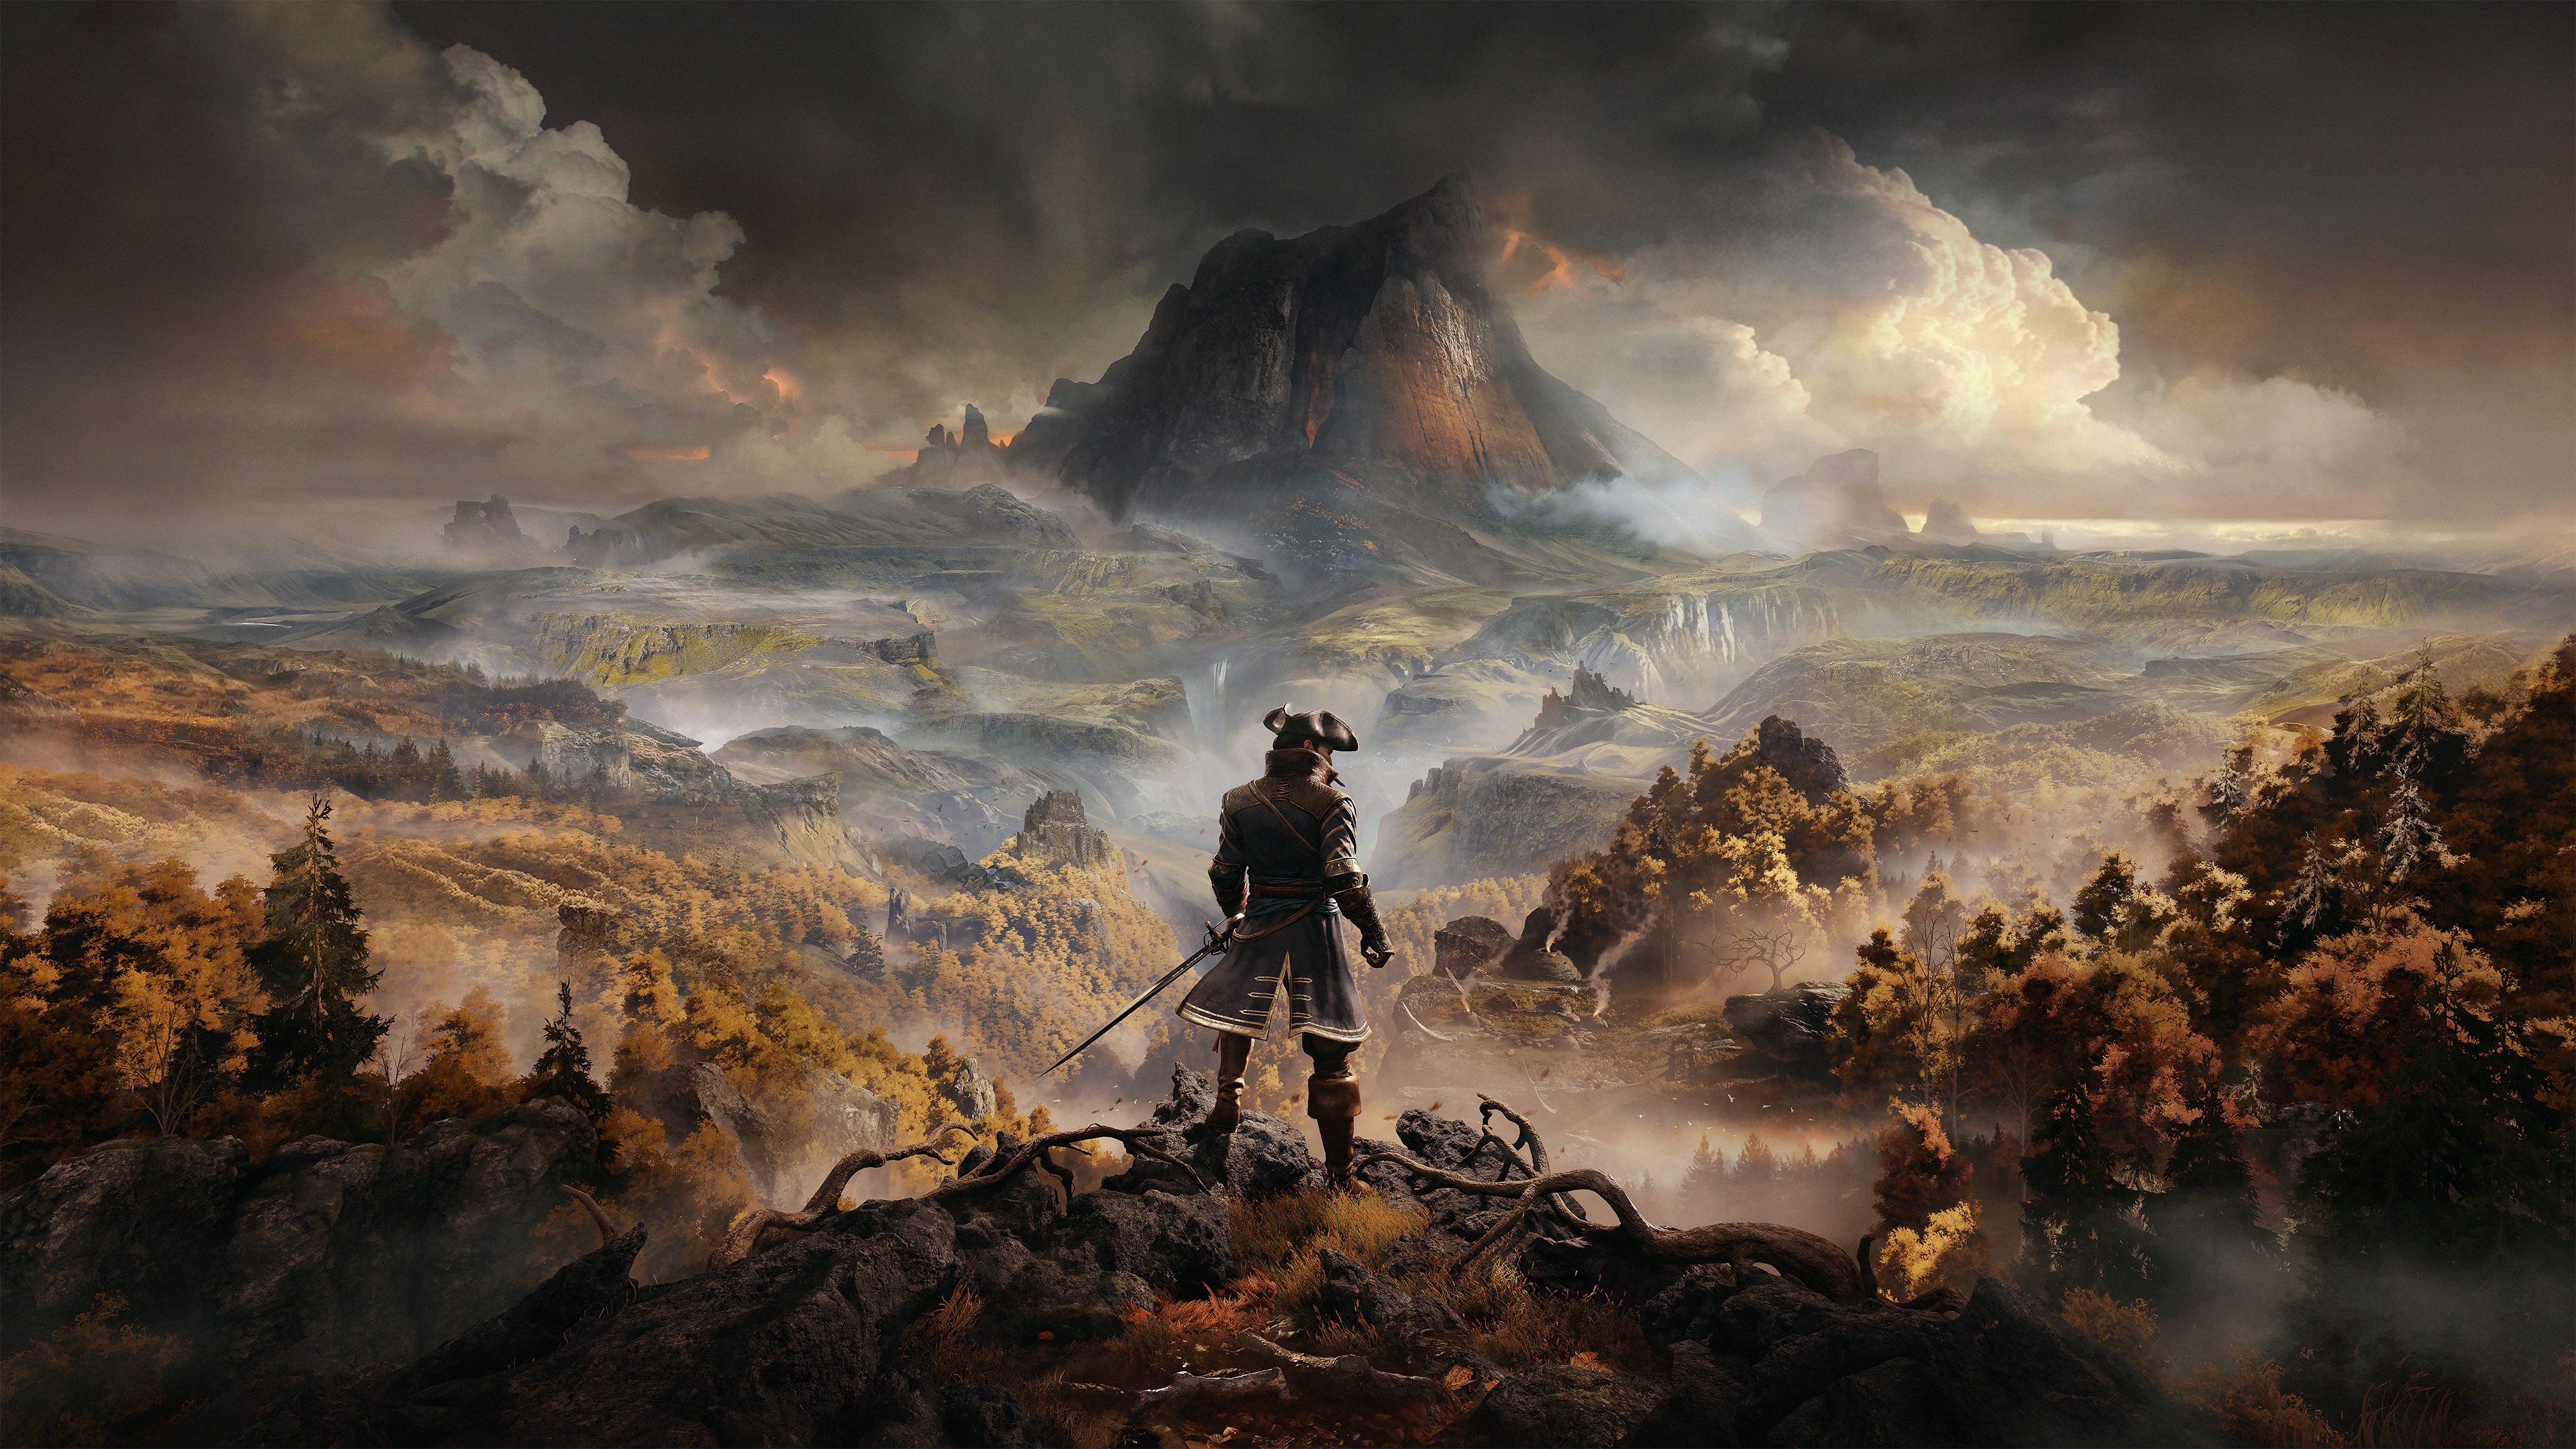 artwork from GreedFall of a man dressed in colonial-era garb, with a cutlass at his side, standing on a cliff with an autumnal vista and a mountain ahead of him